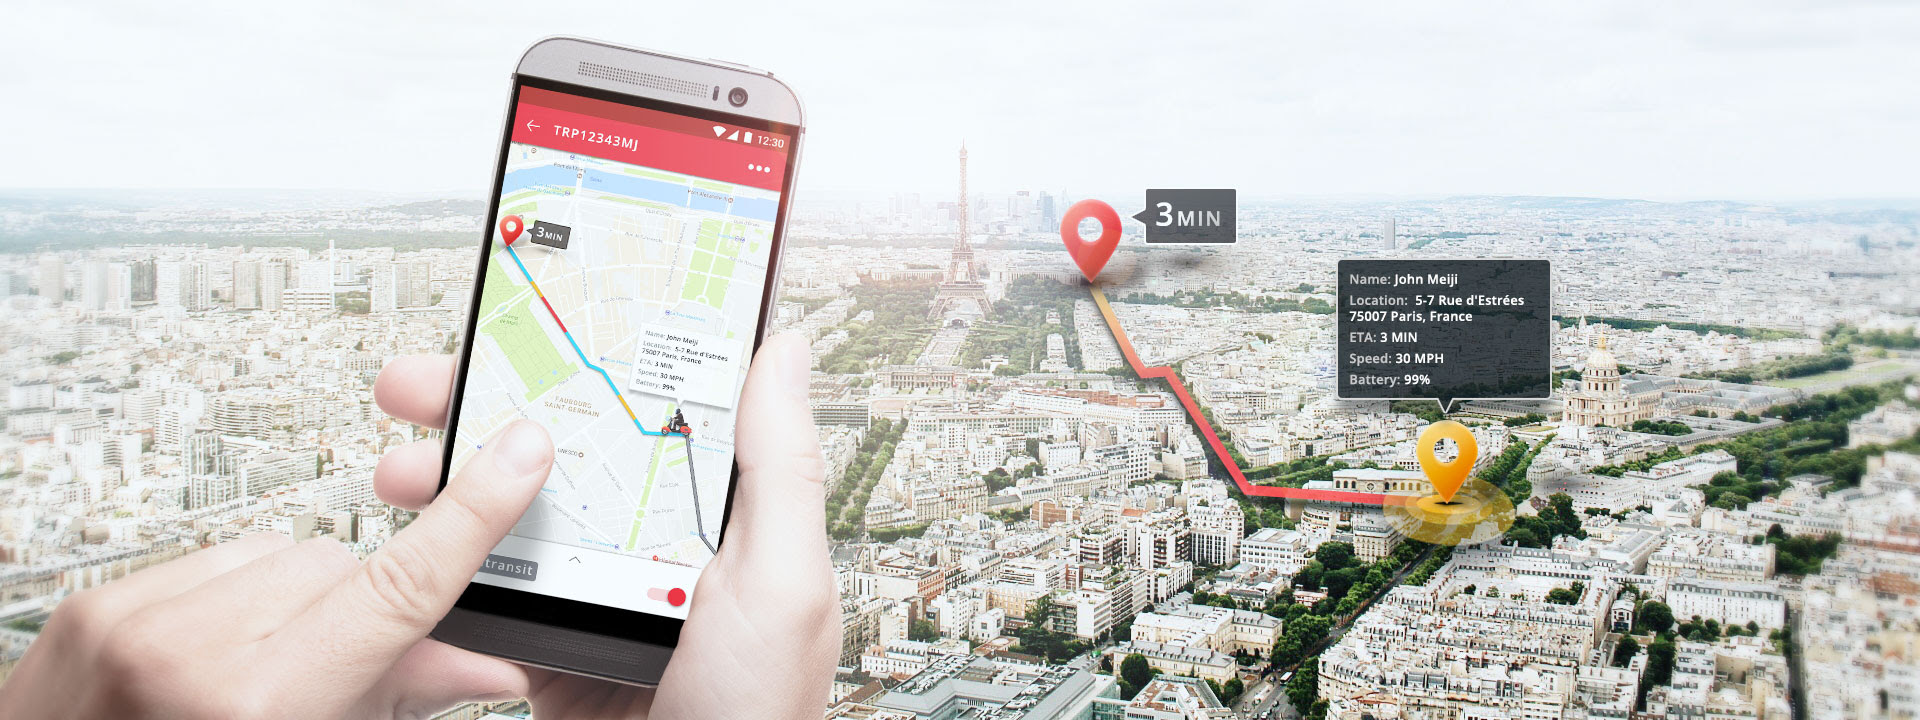 LogiNext Helps Enterprises Track Field Workforce's Location in Real-time